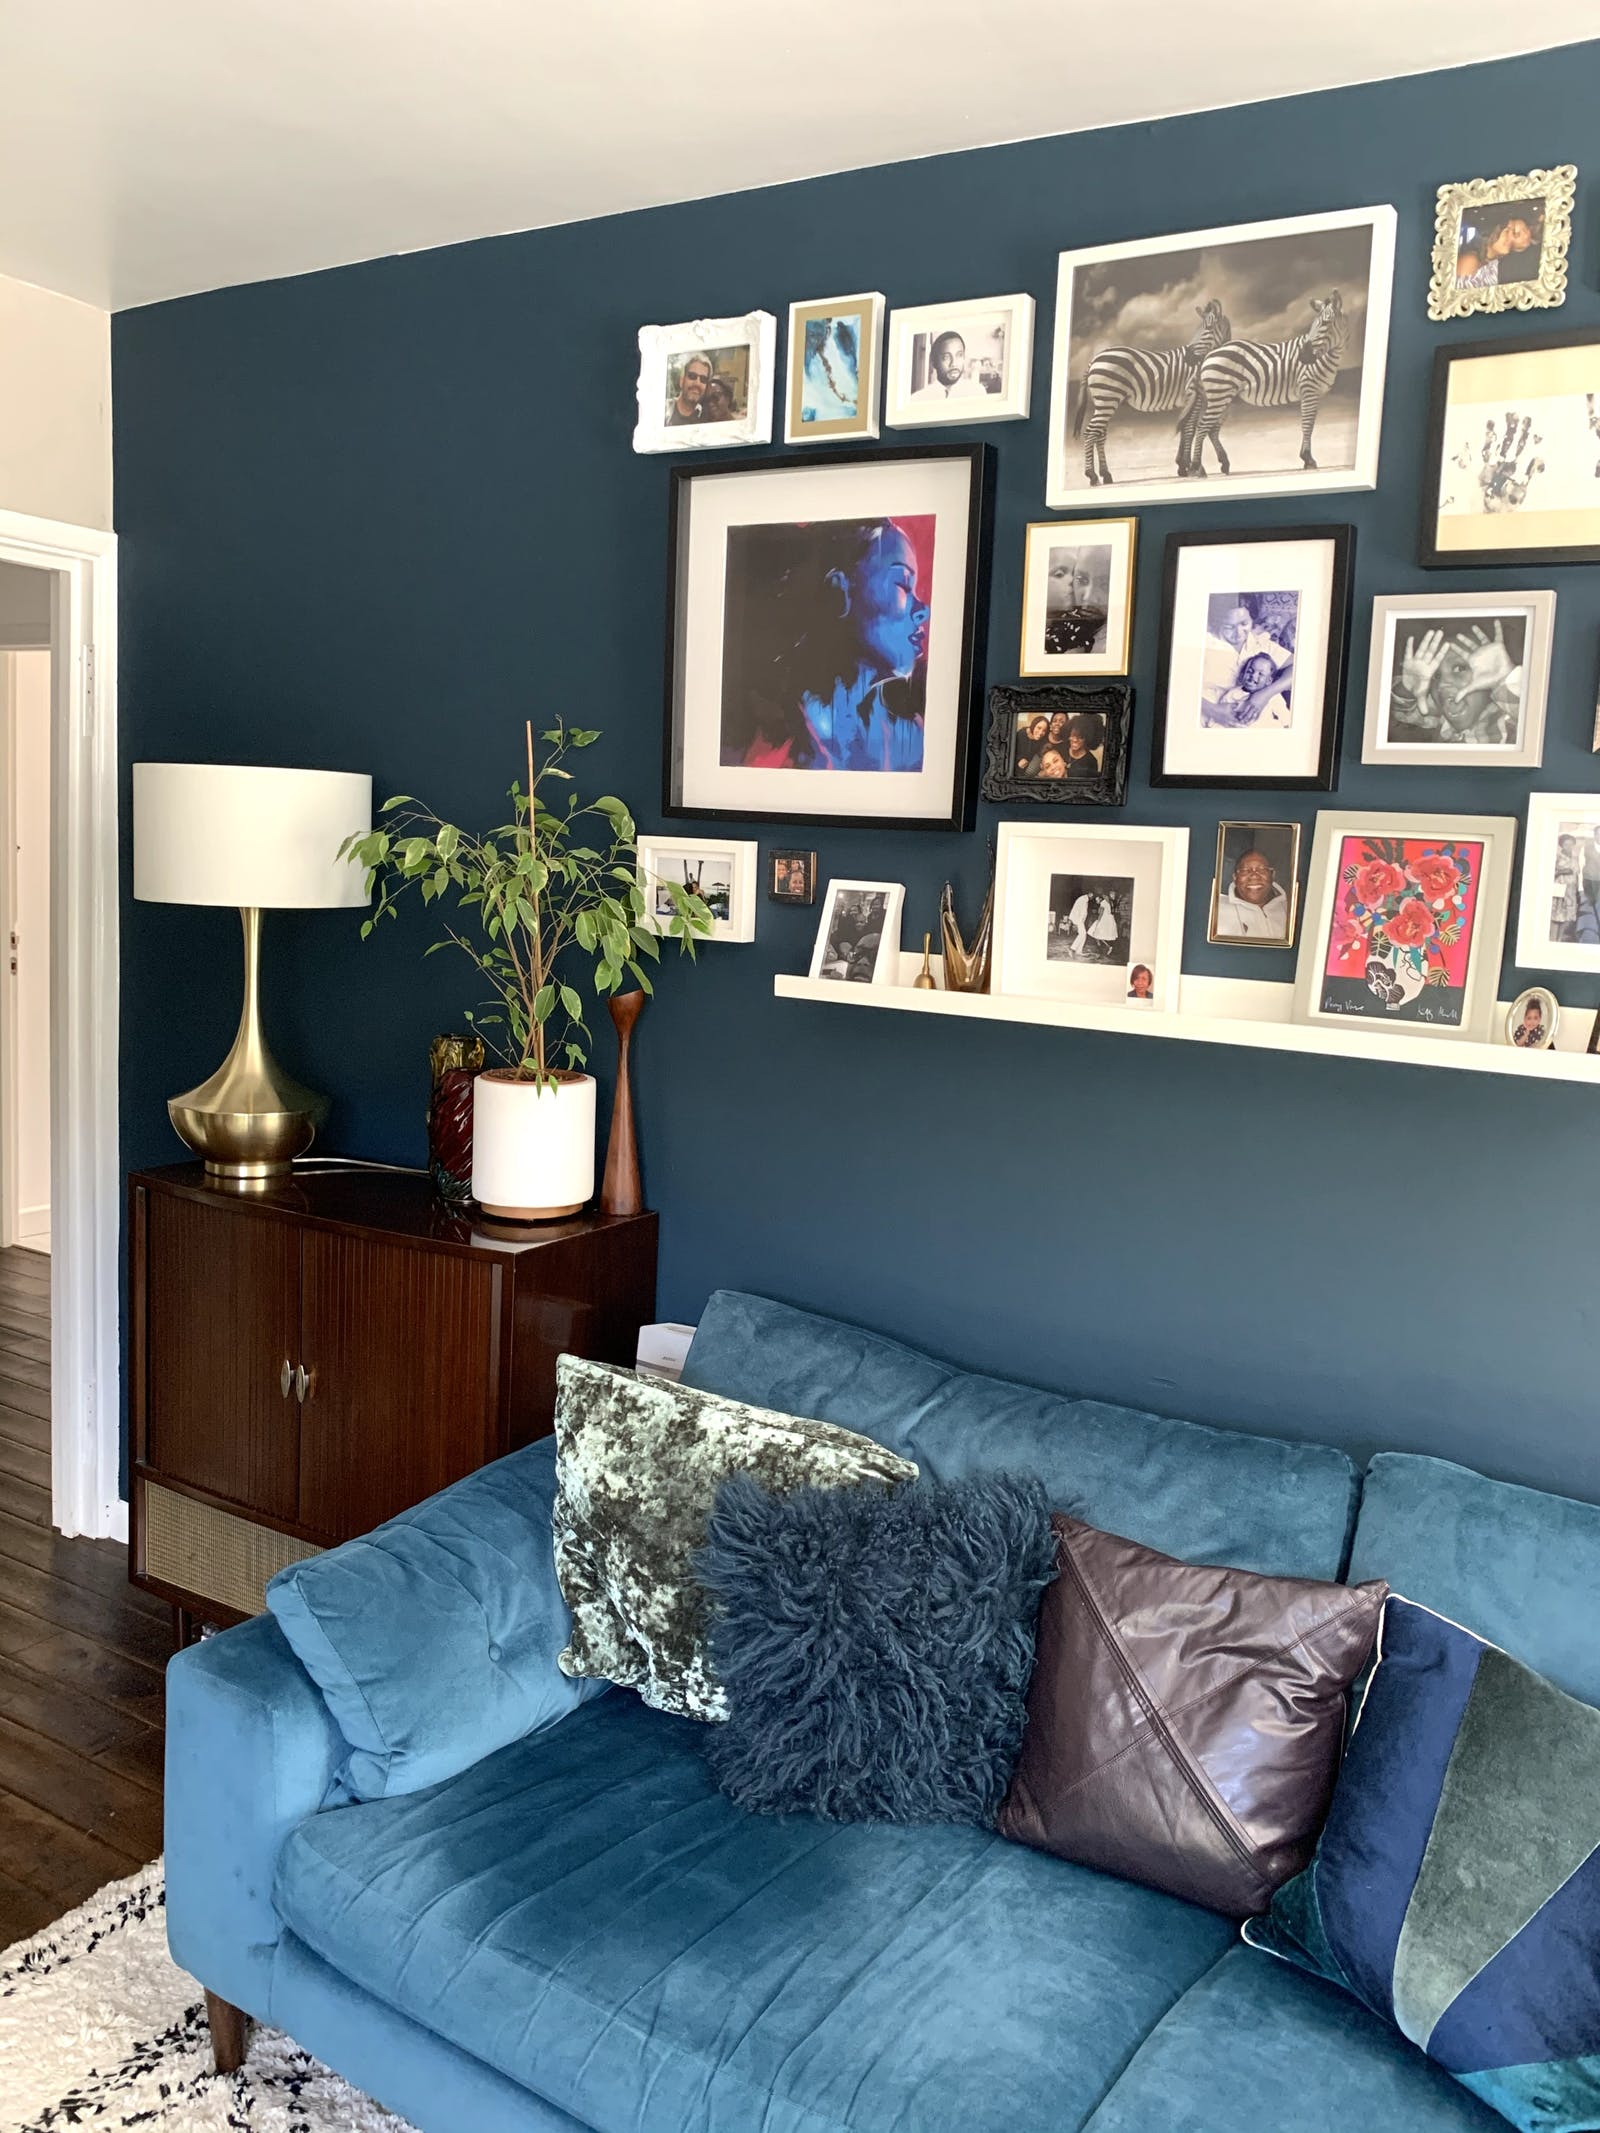 Living room painted in Lick Blue 07 with a dark blue sofa and gallery wall